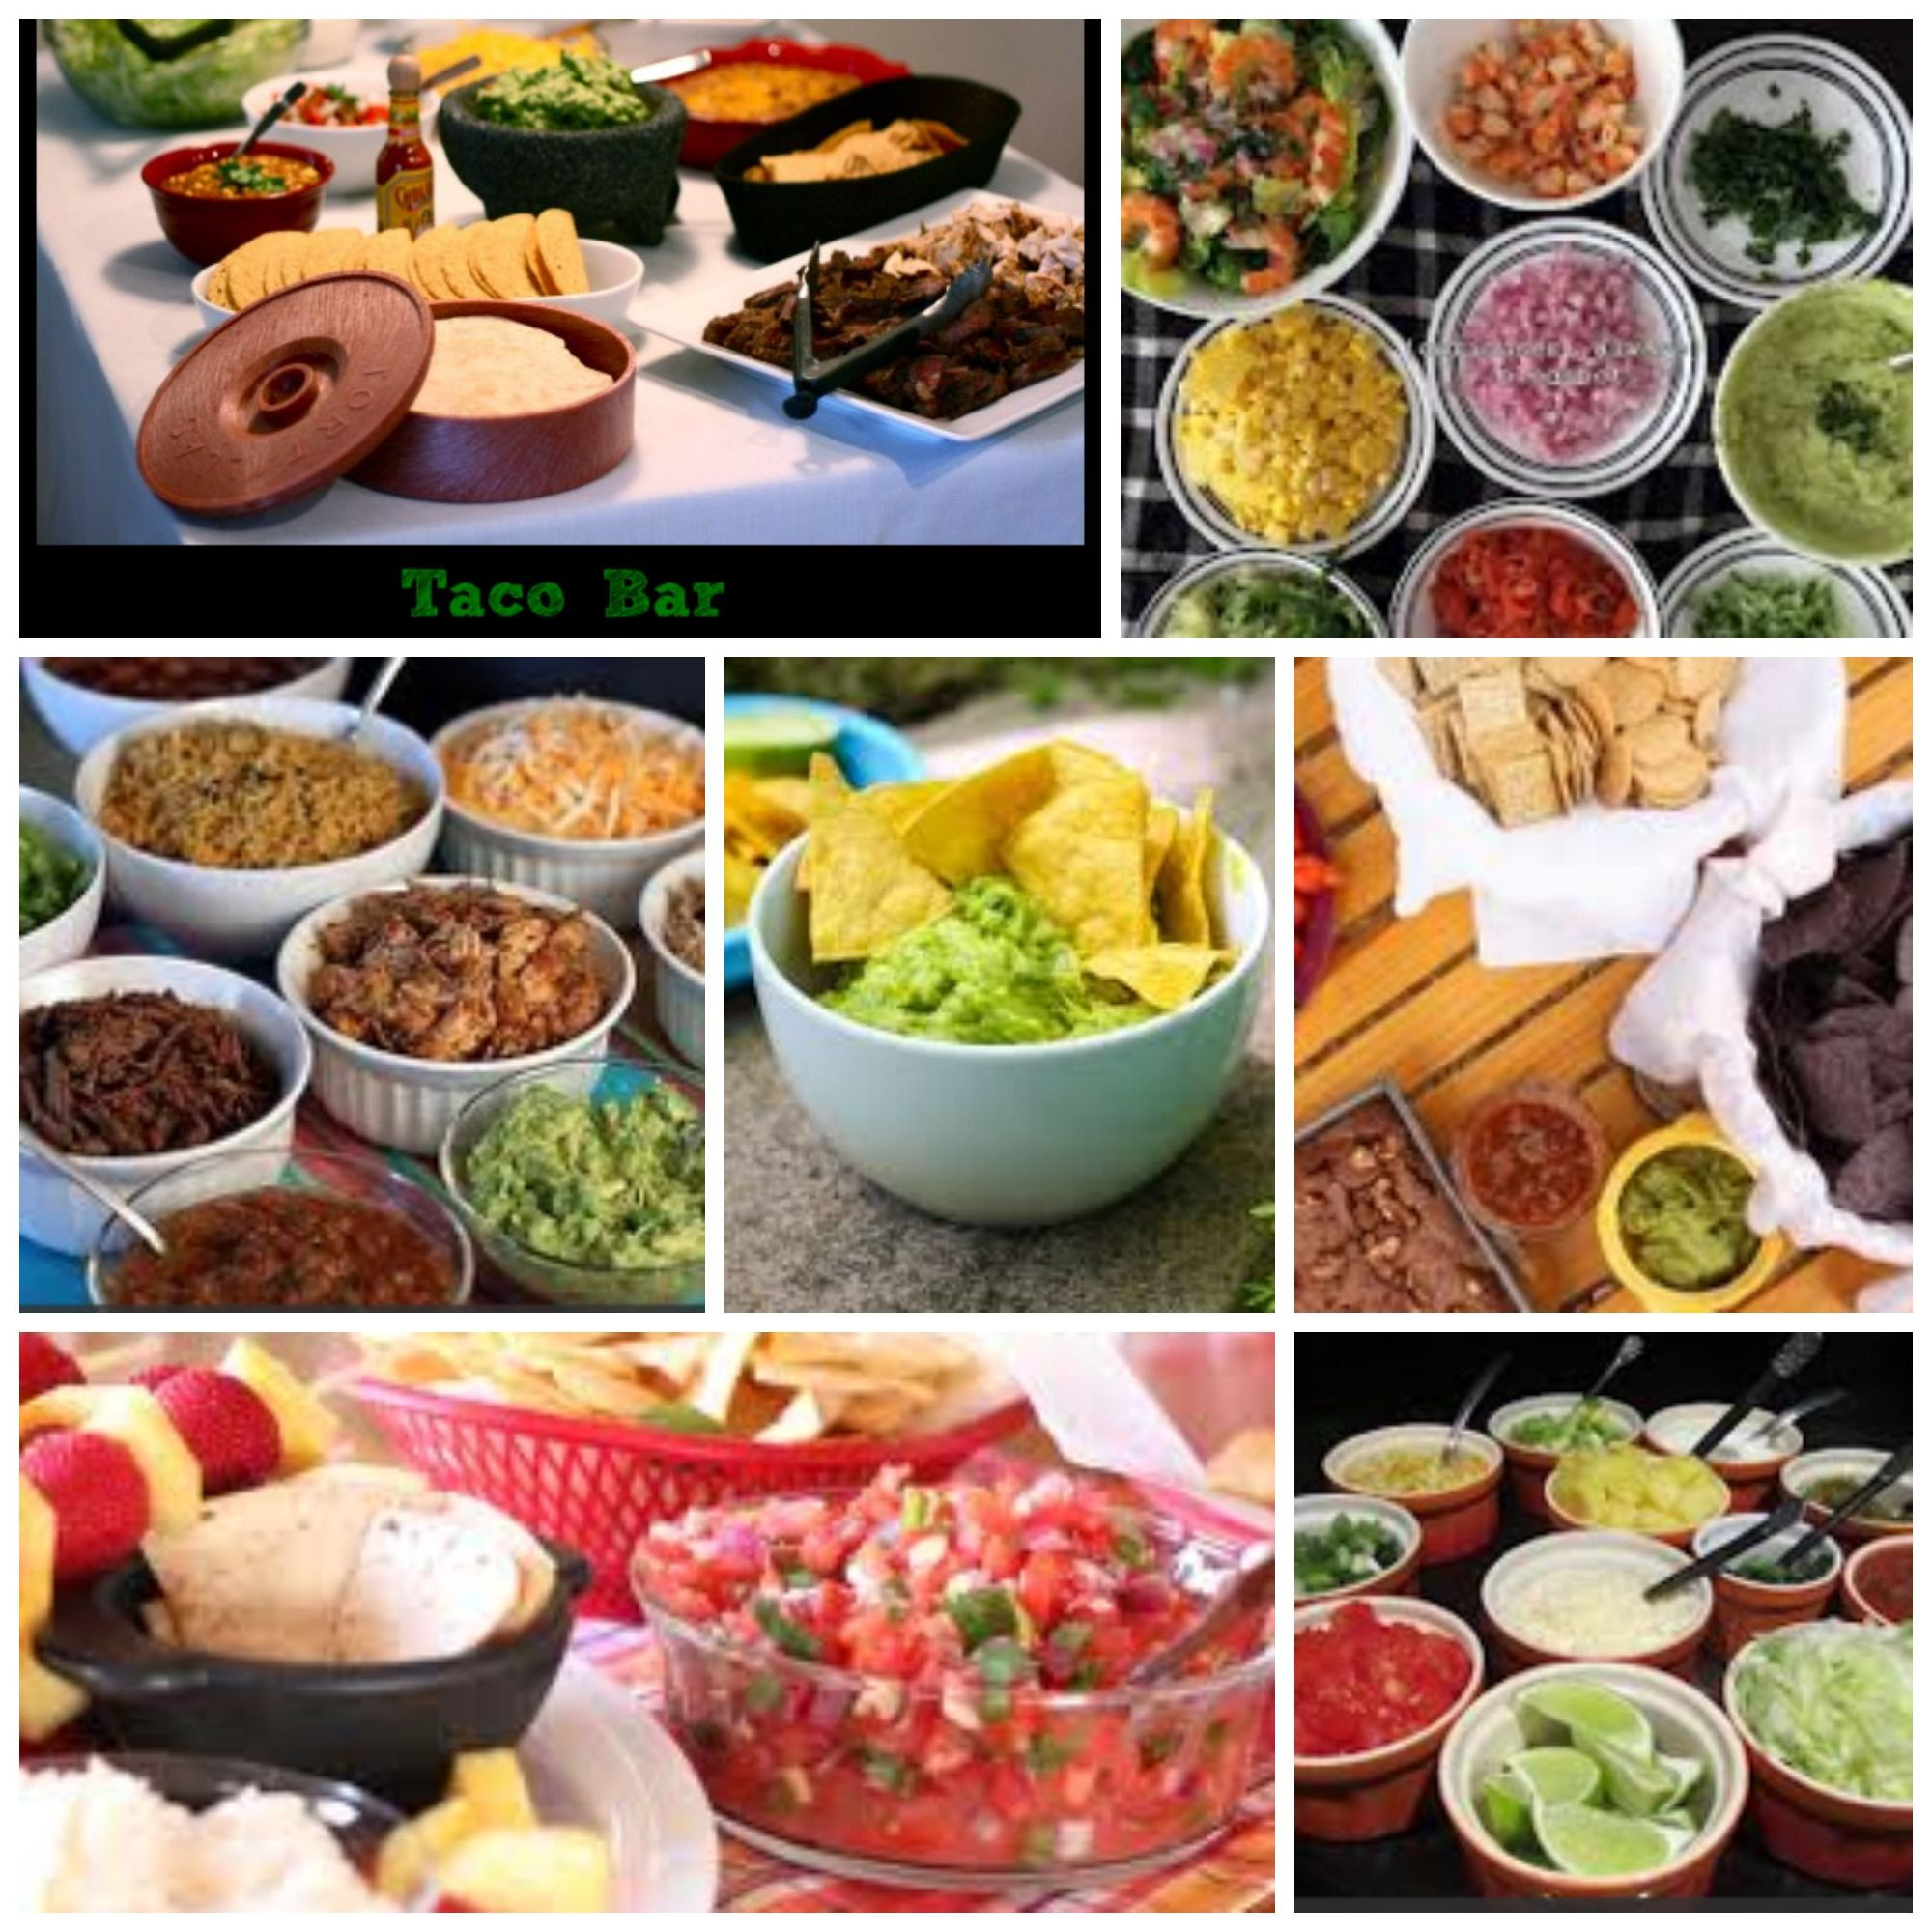 Christmas Party Menu Ideas For Large Groups  Taco bar ideas to feed groups of 10